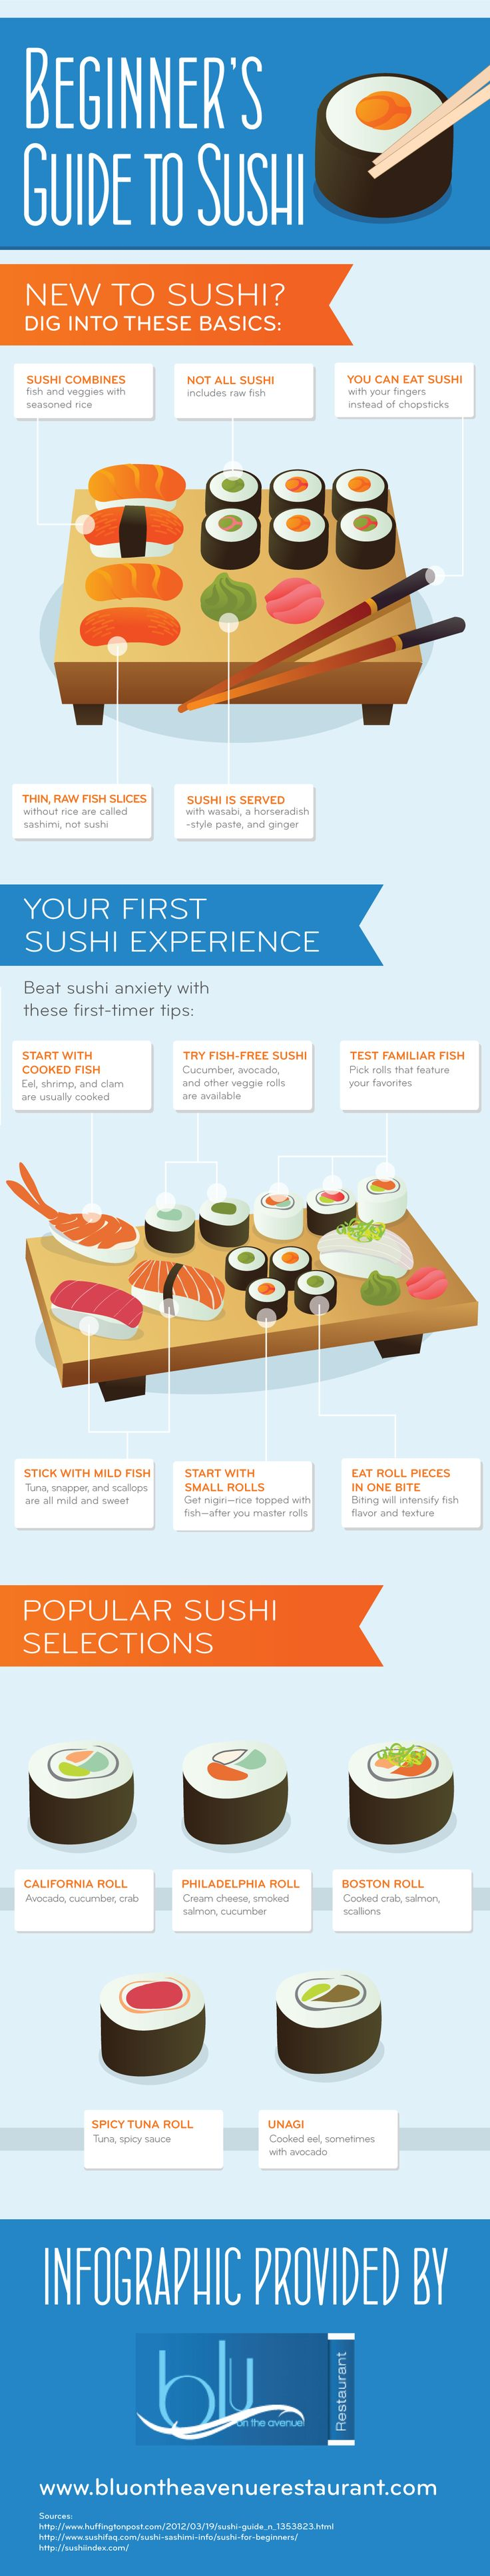 Beginners Guide to Sushi Infographic (Japan)